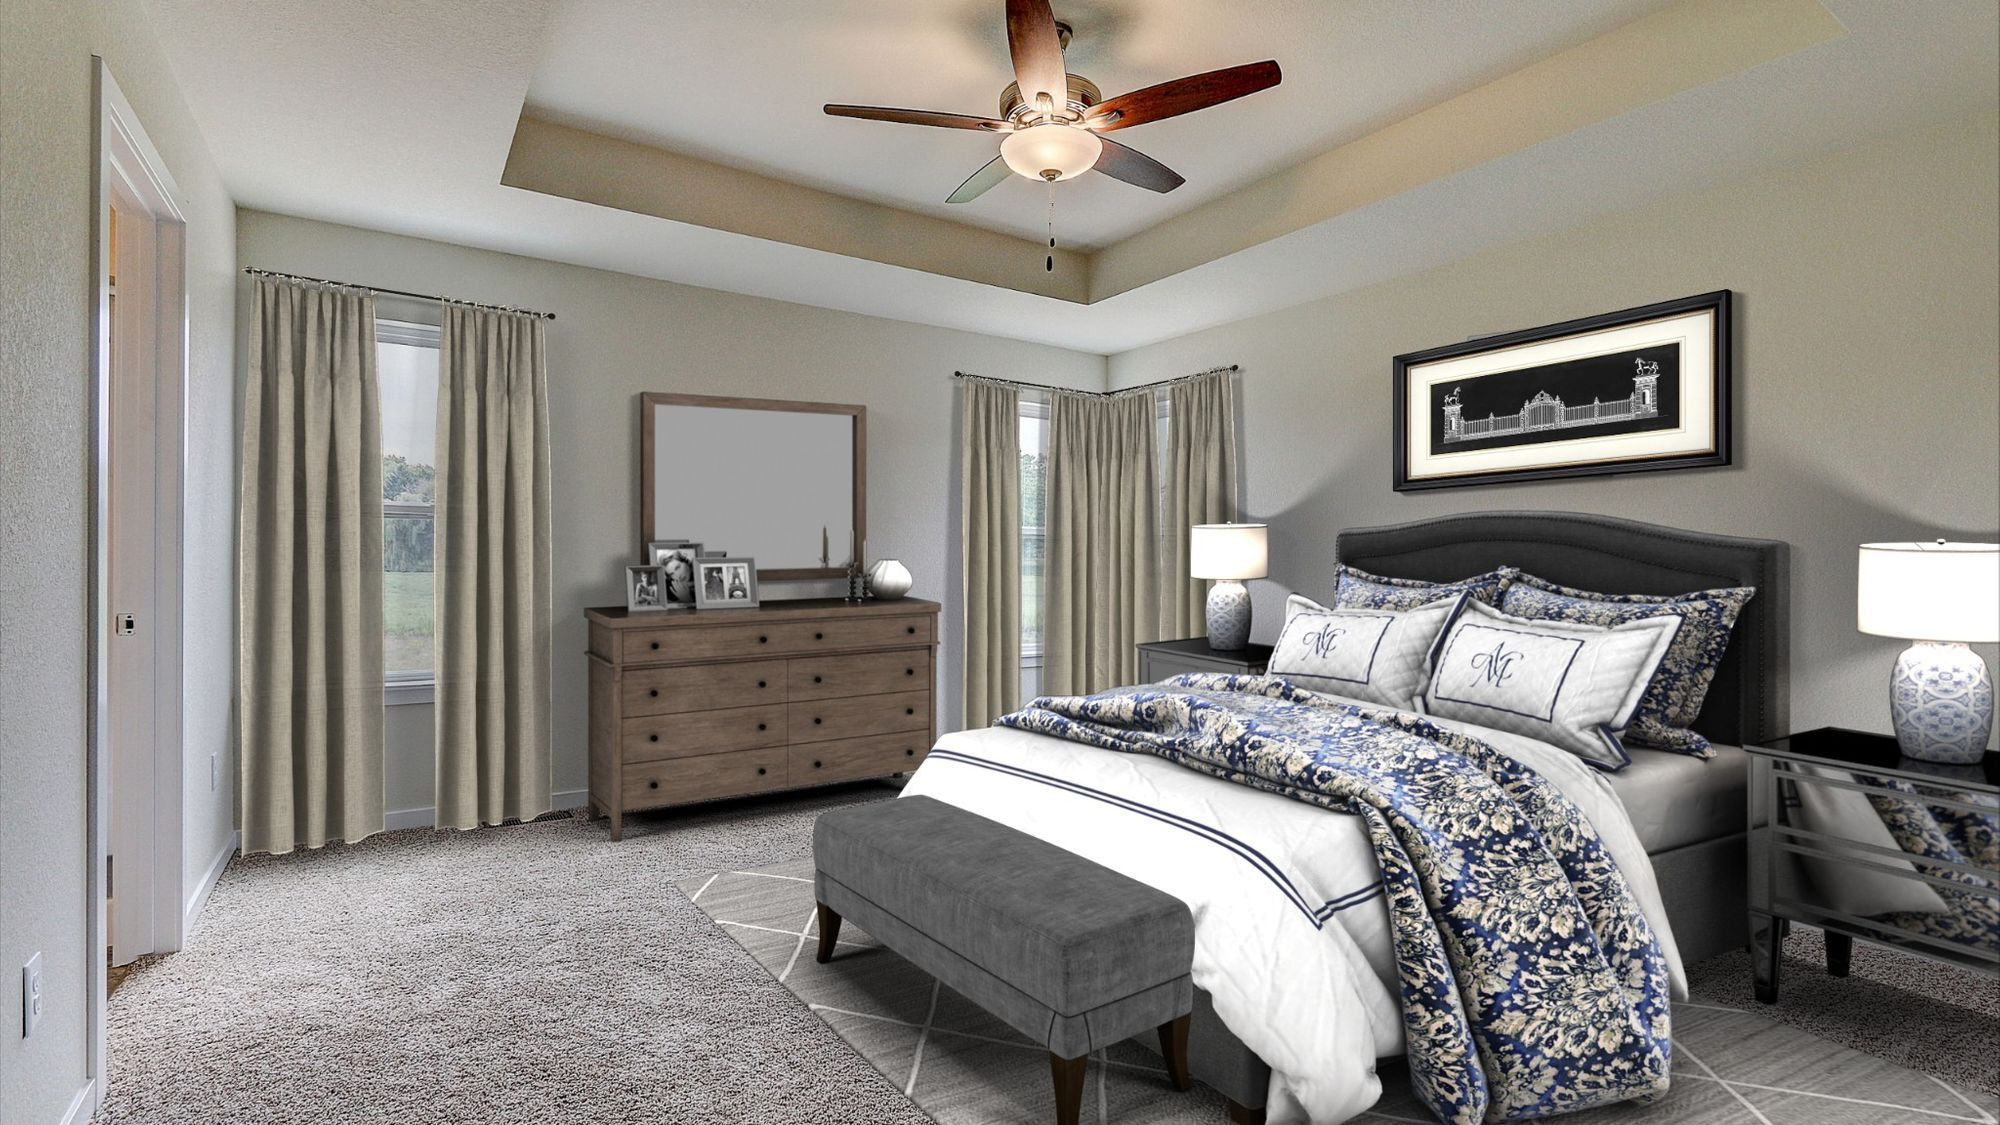 Bedroom featured in The Catalina By Harbor Homes in Washington-Fond du Lac, WI